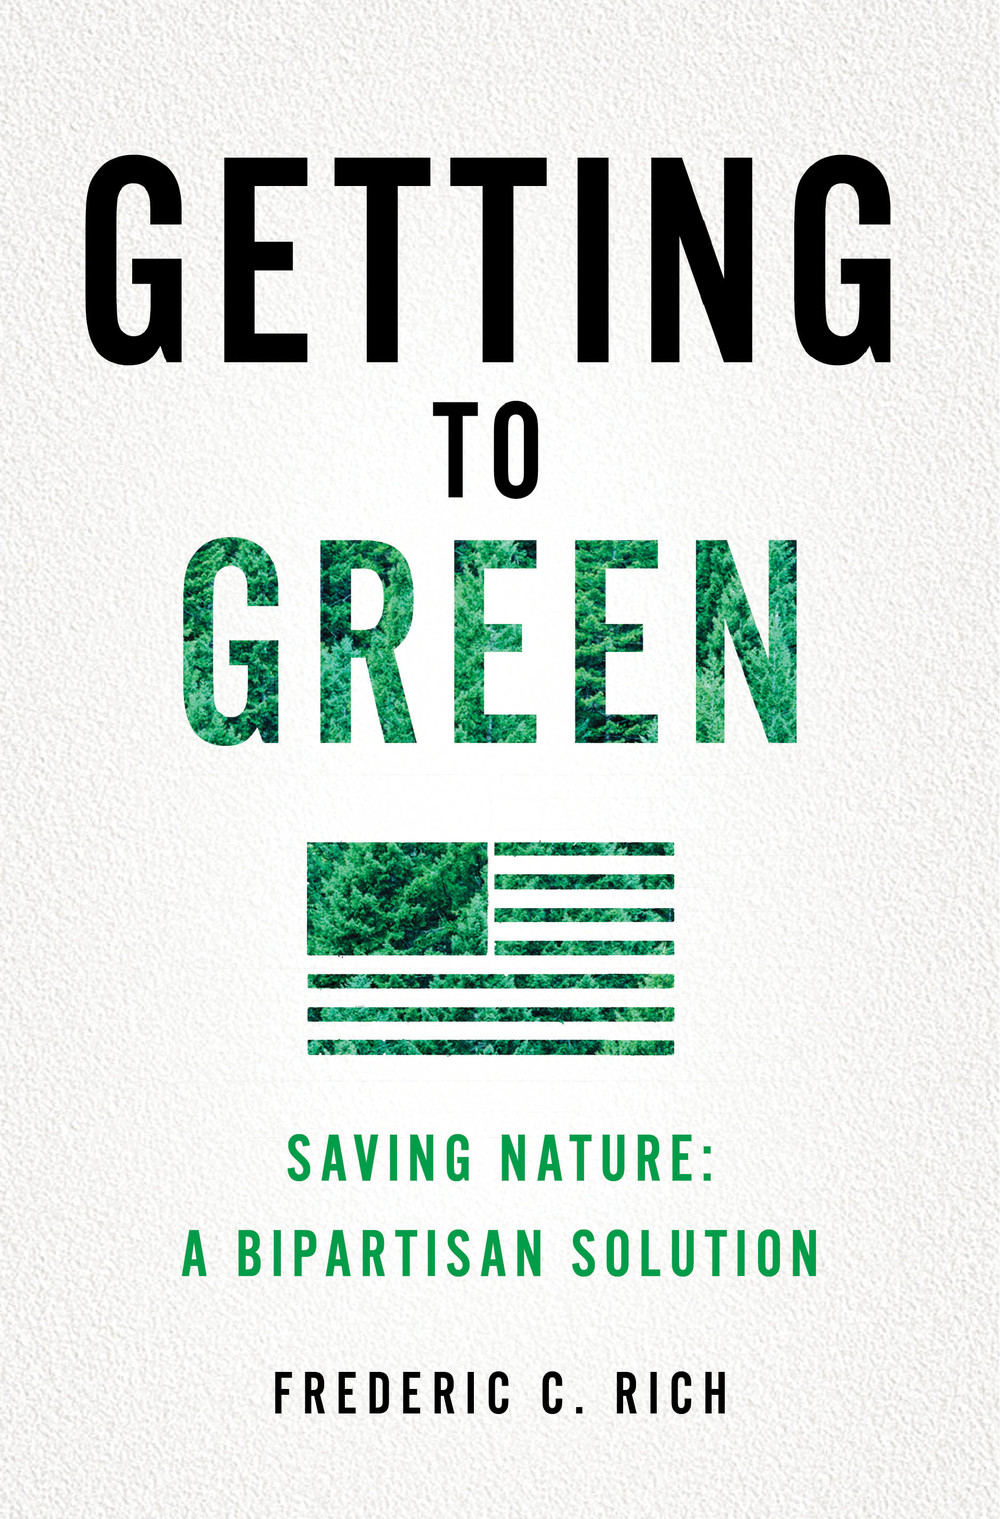 Getting to Green by Frederic C. Rich book cover